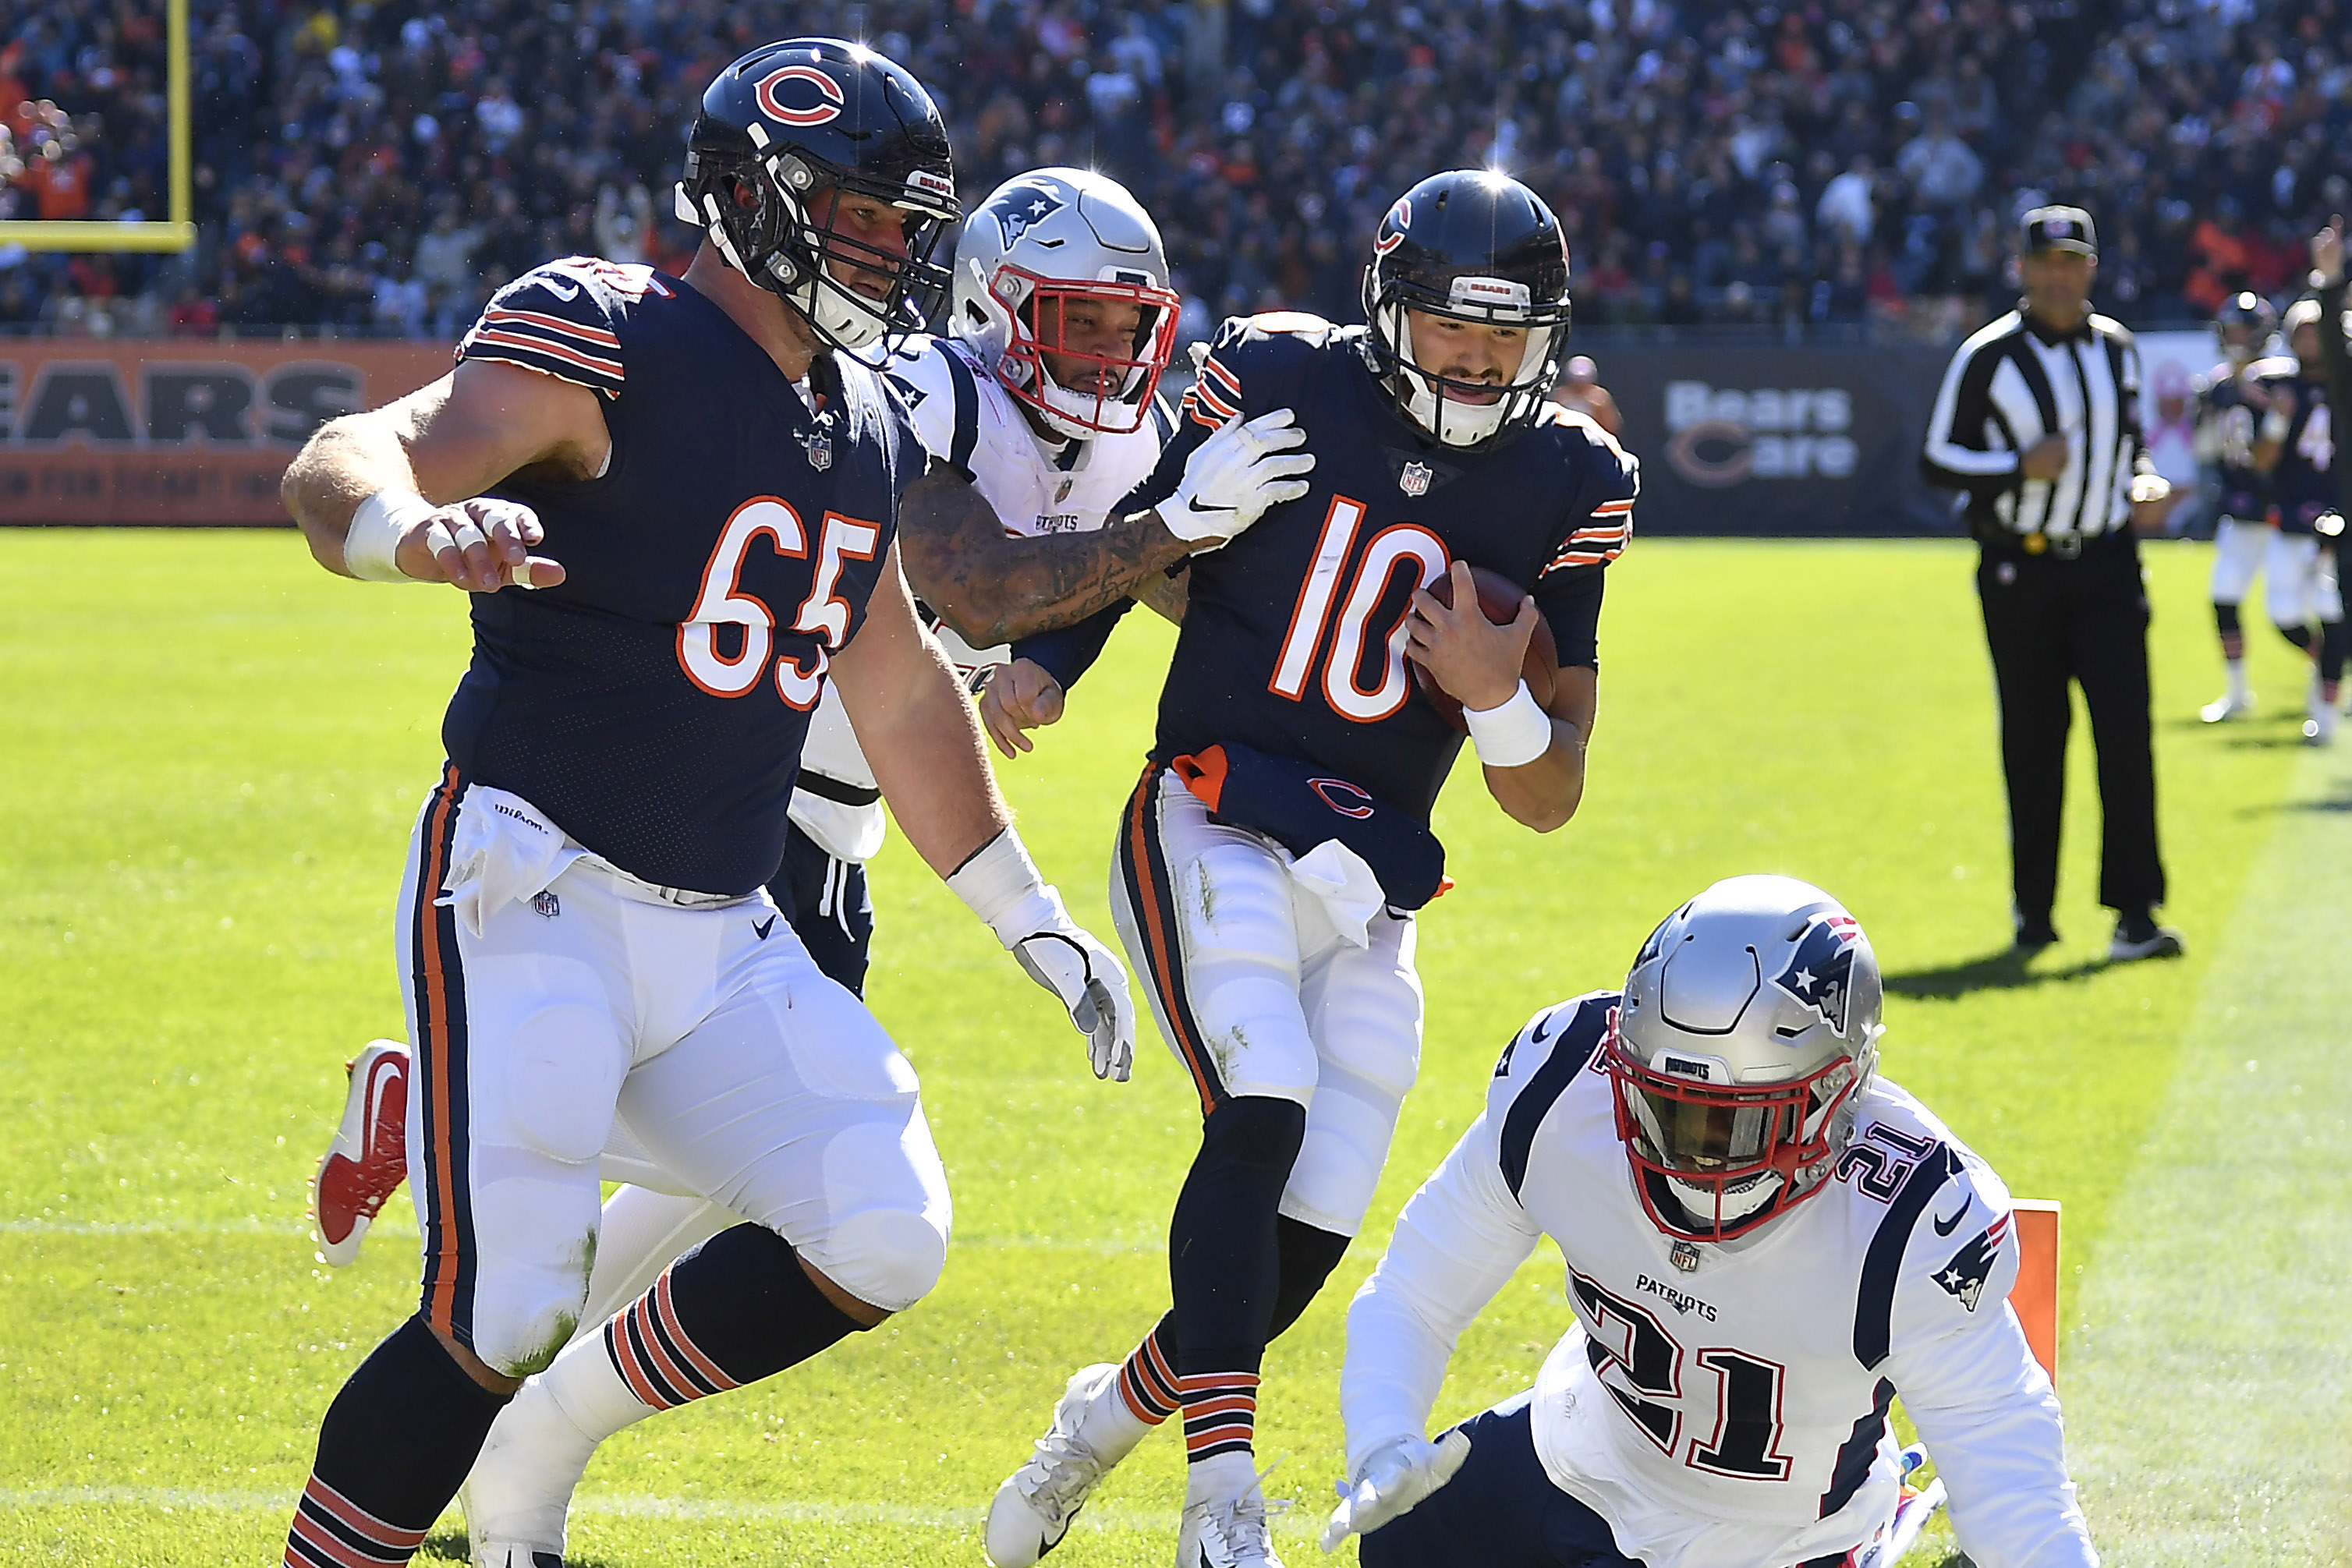 Mitchell Trubisky's arm couldn't beat the Patriots. But his legs almost did